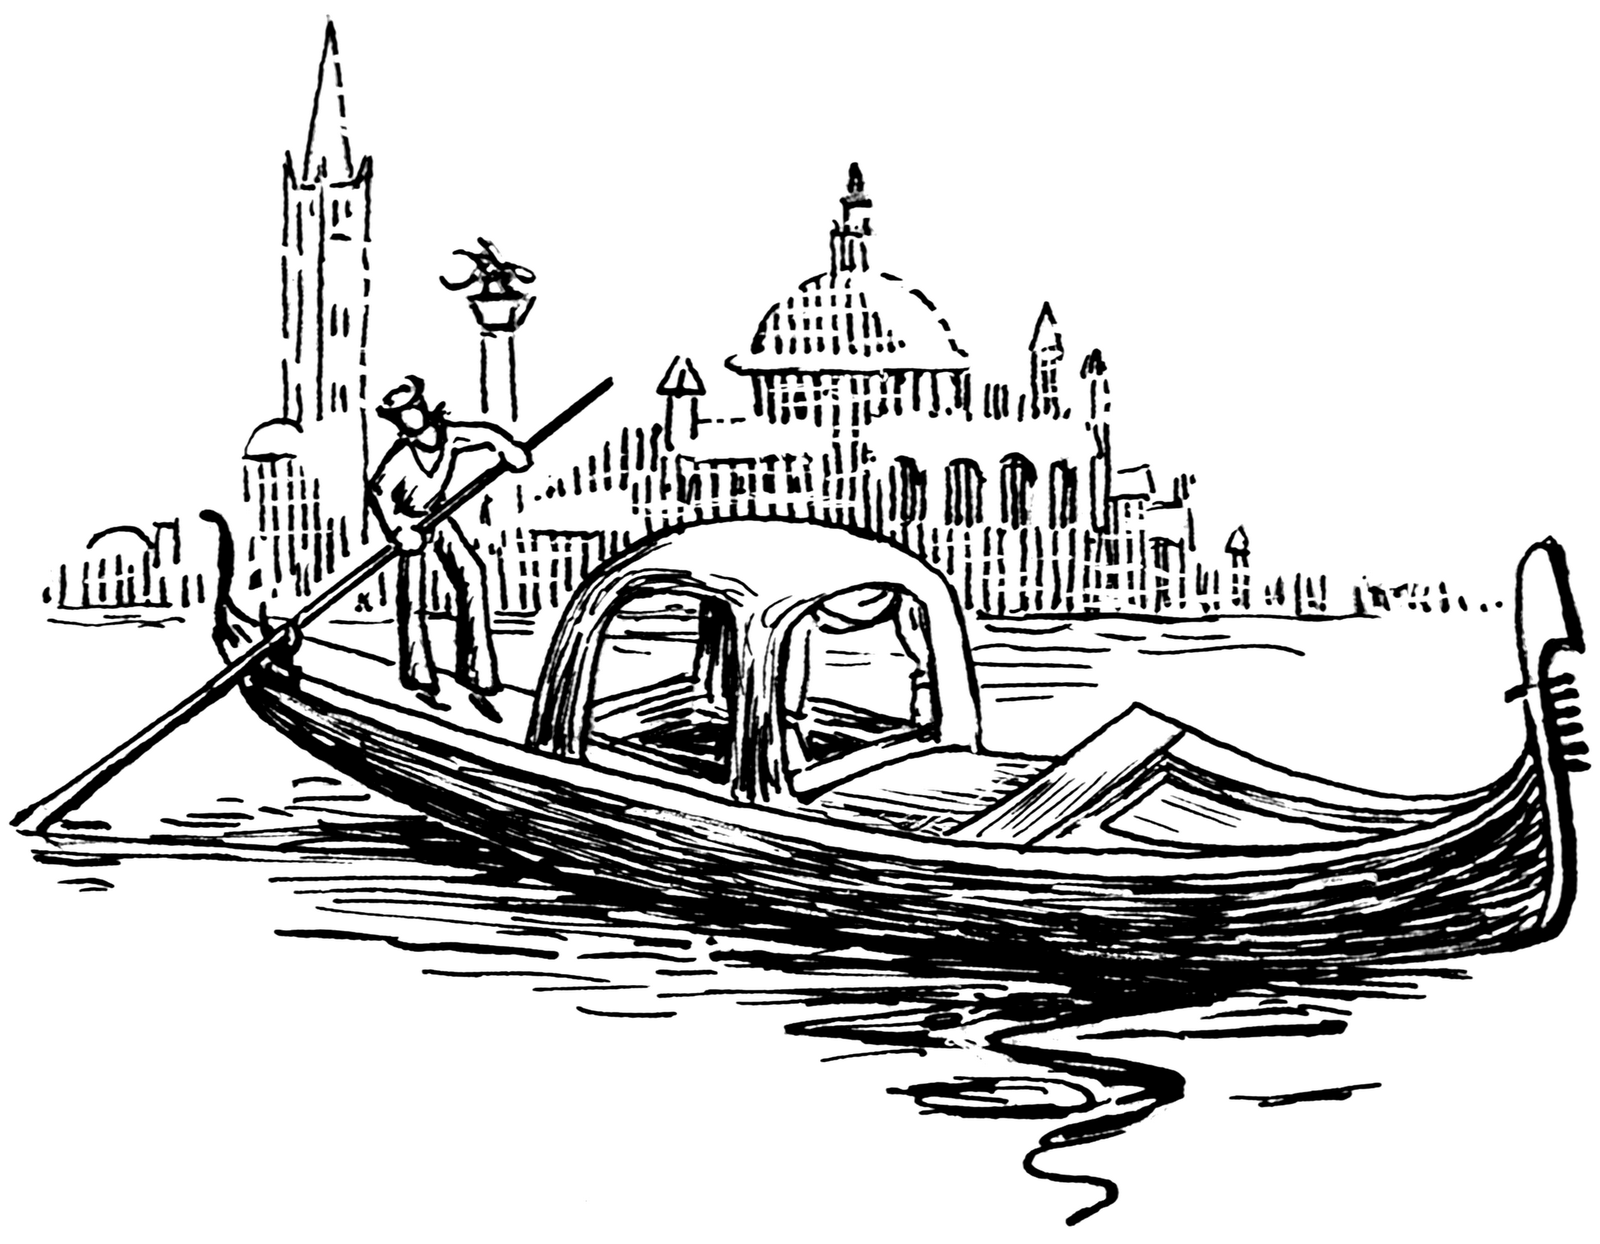 Iiii clipart boat Gondola collection Gondola Morbideidee boat